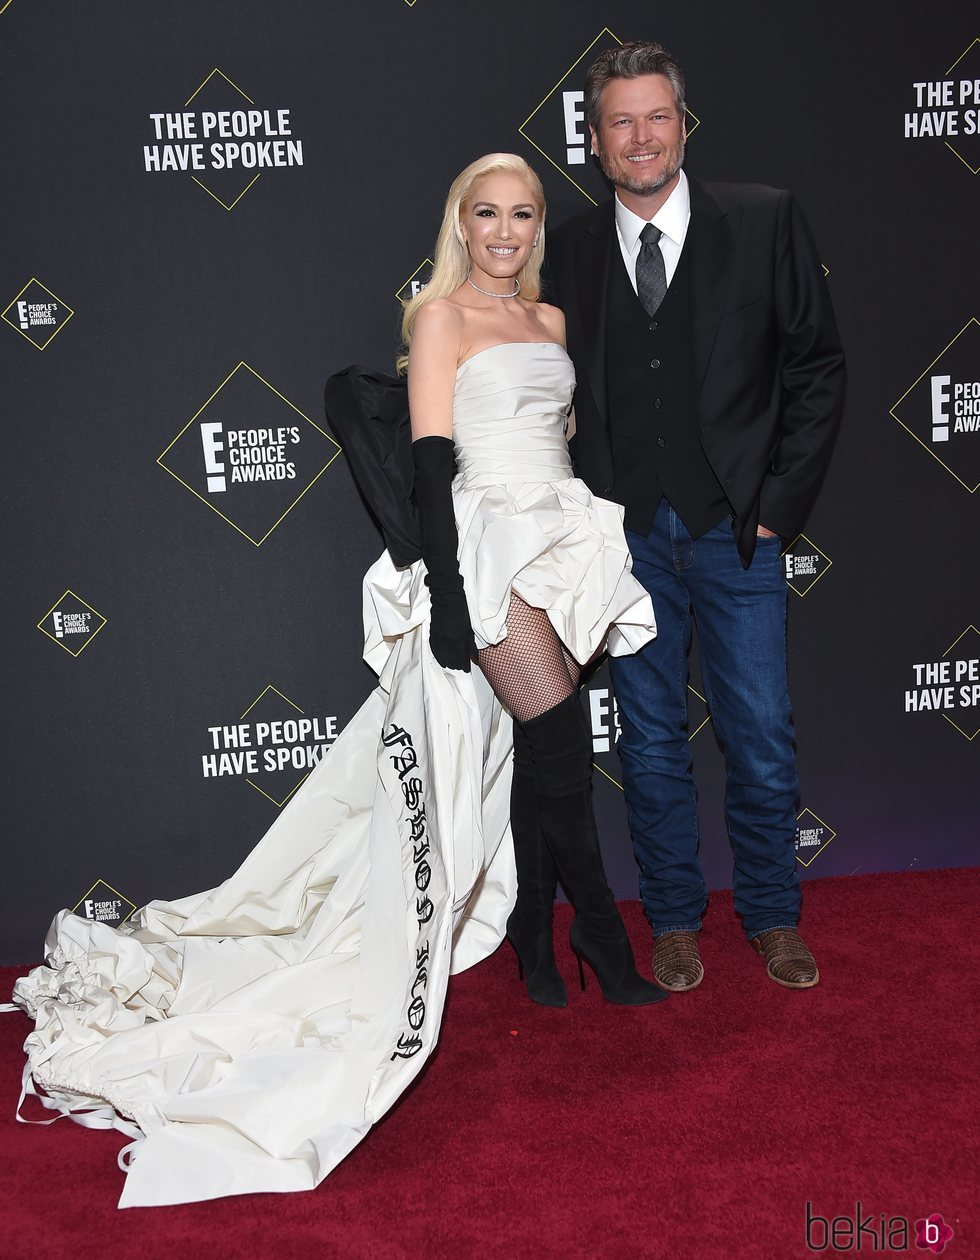 Gwen Stefani y Blake Shelton en la alfombra roja de los People's Choice Awards 2019